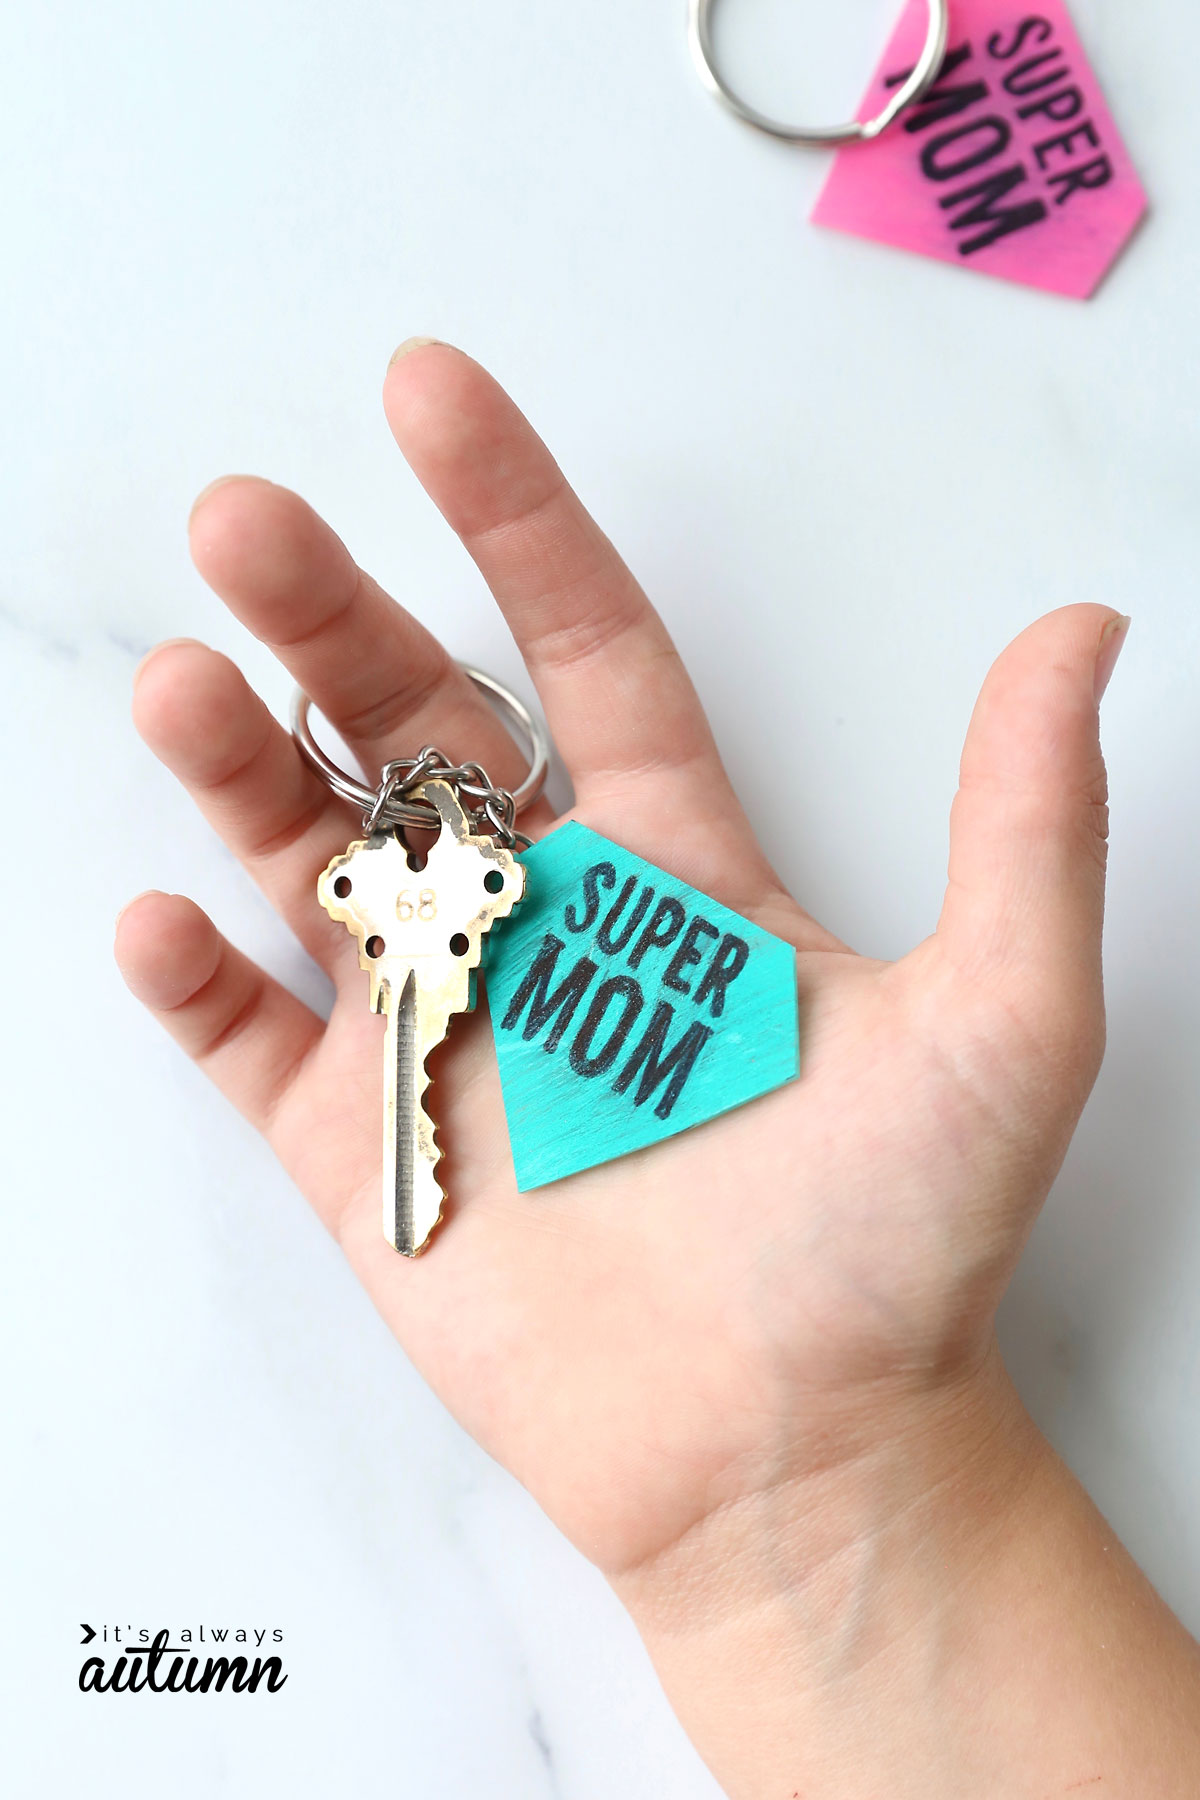 Hand holding a key on a keychain that says supermom